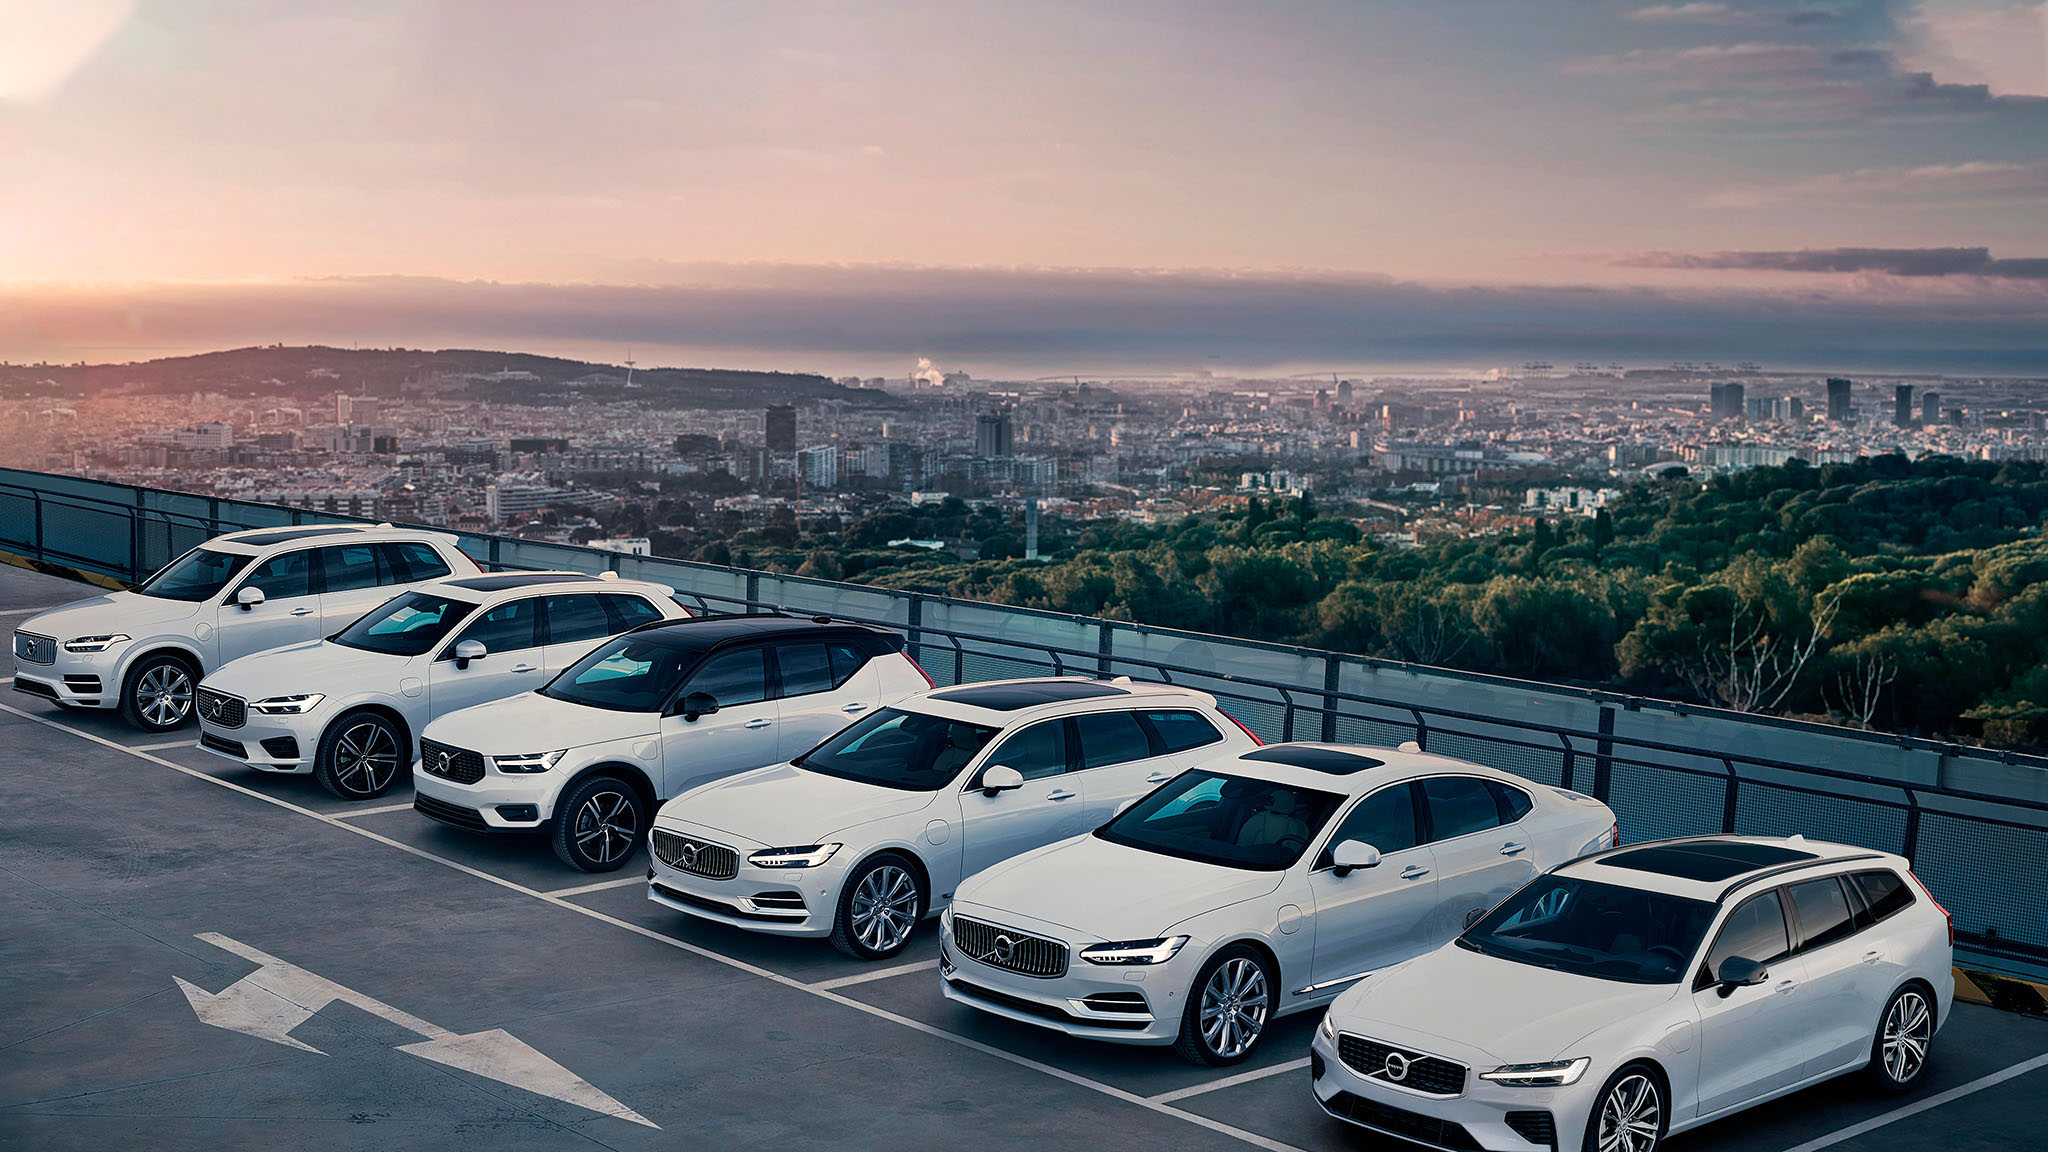 A true Volvo experience is waiting for you Image